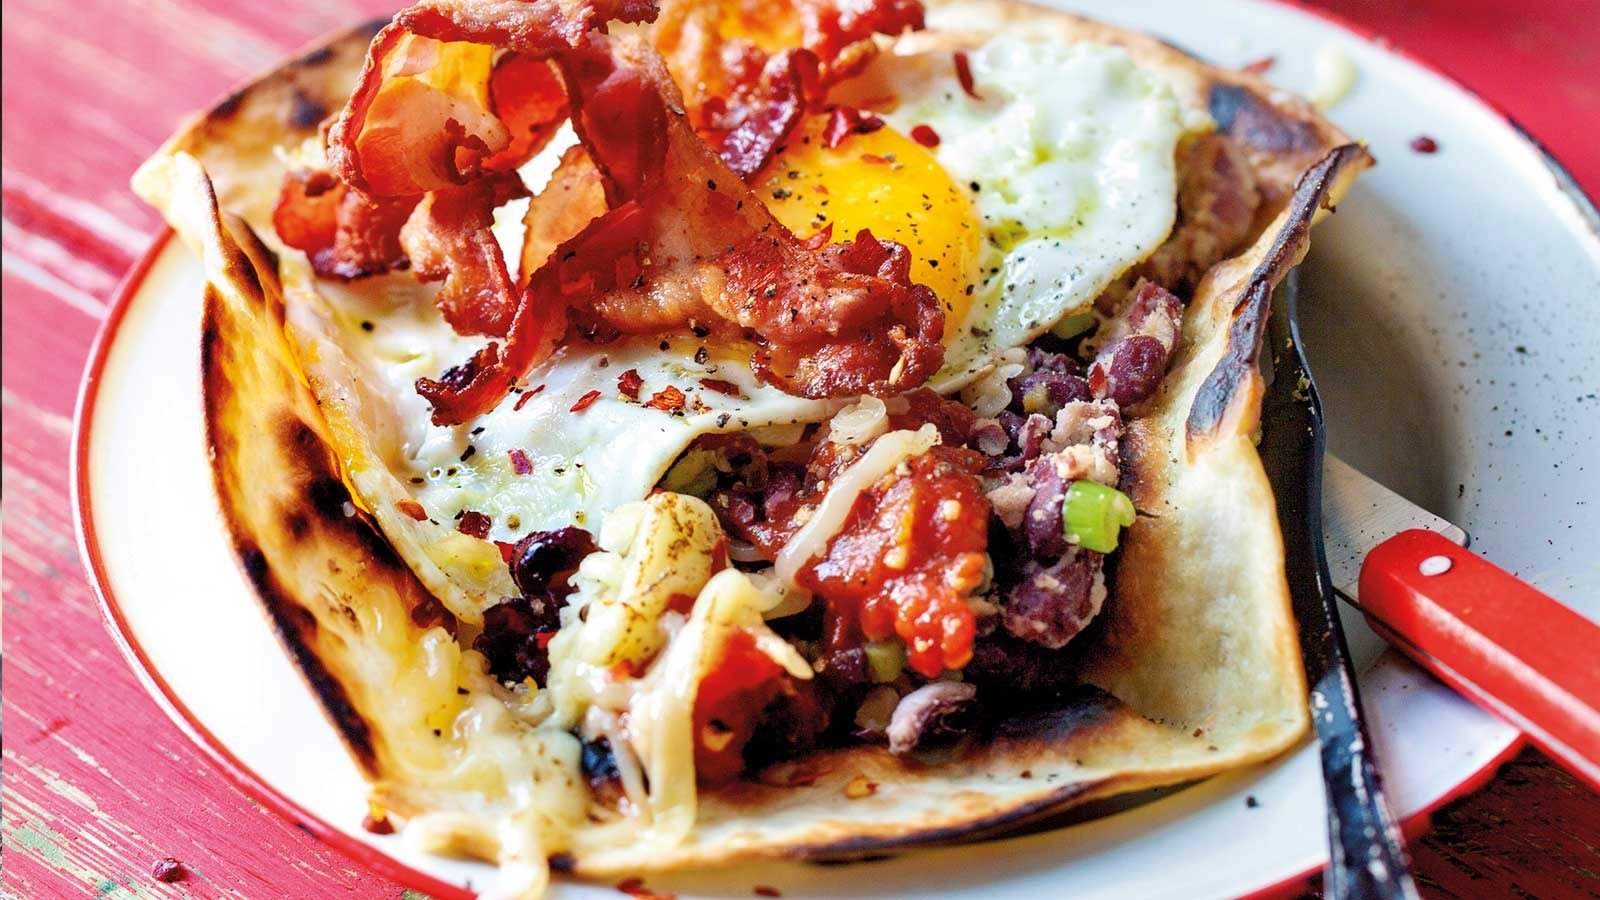 Open breakfast tortilla with fried eggs, grilled tomatoes, salsa and baked beans